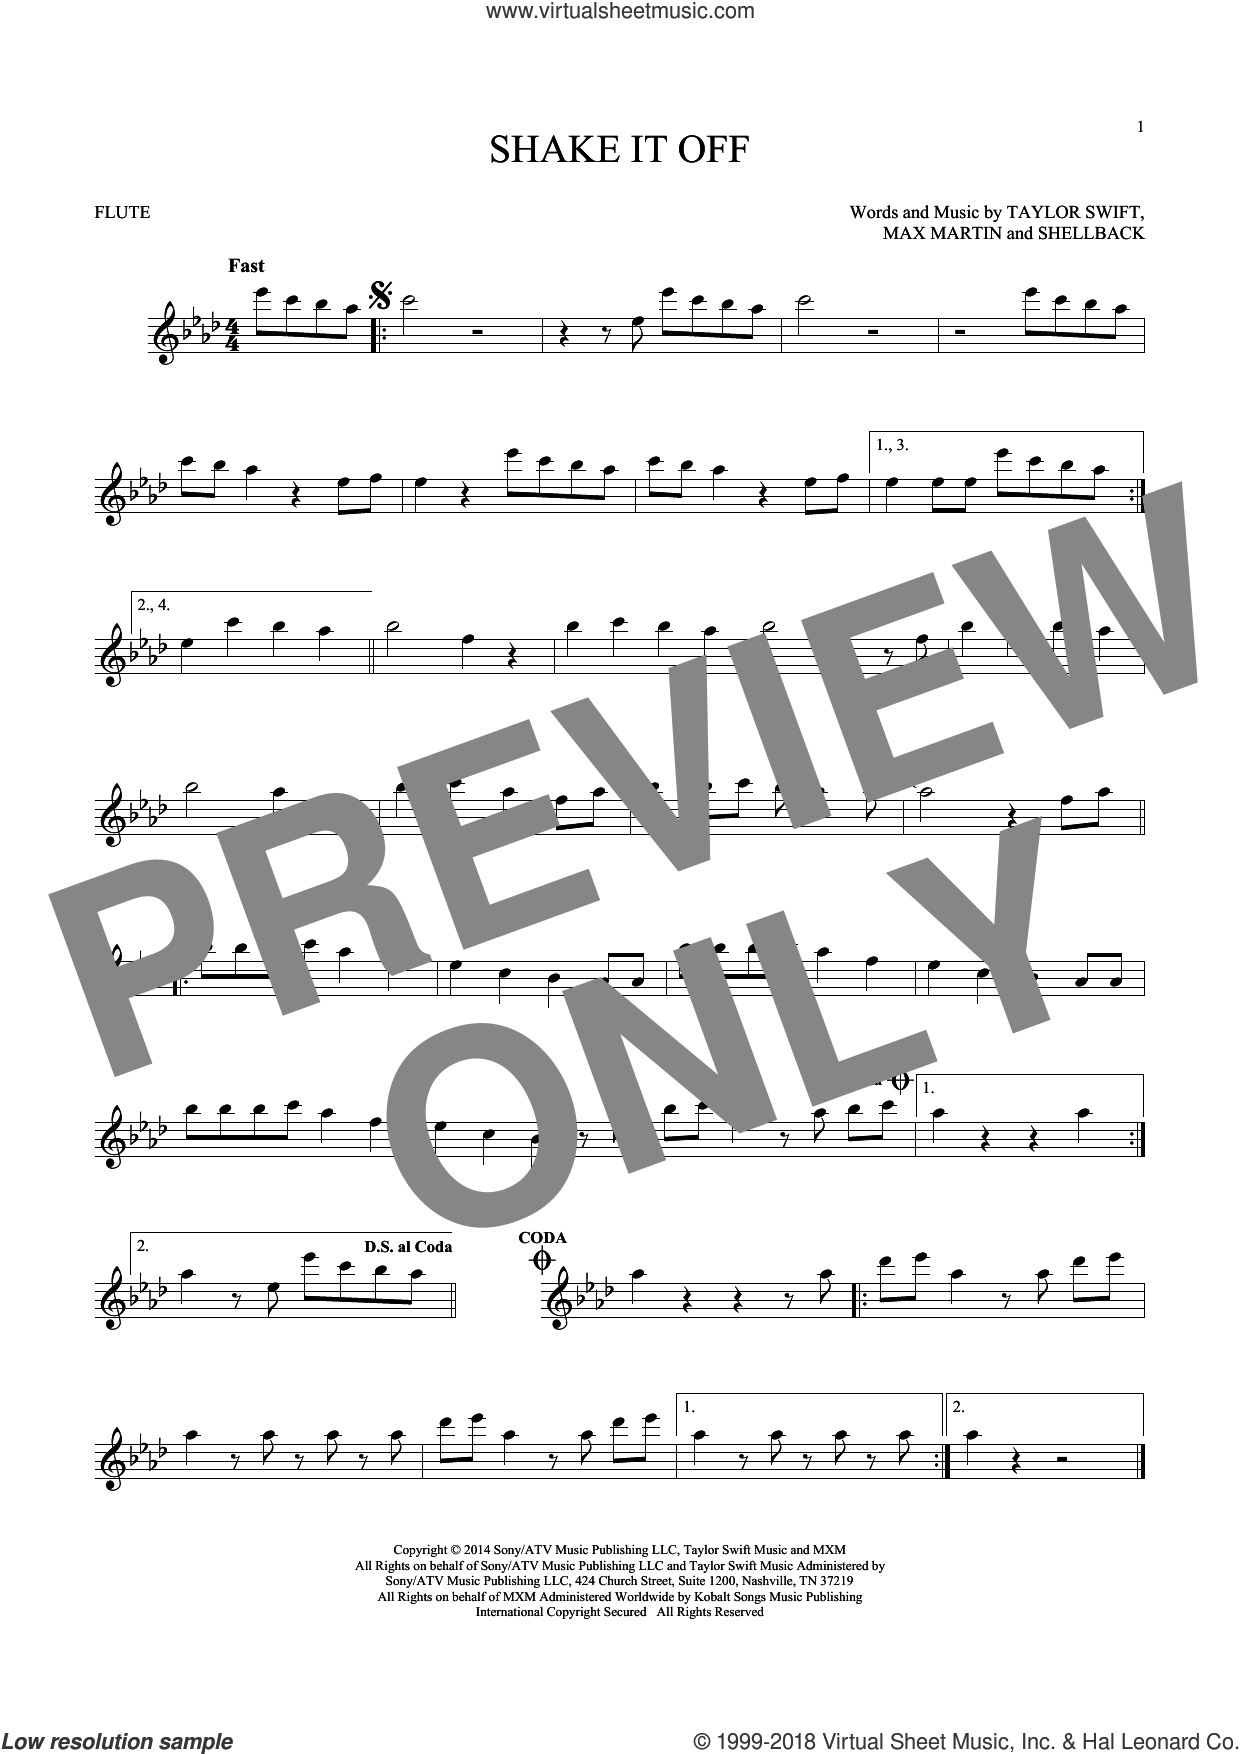 Shake It Off sheet music for flute solo by Taylor Swift, Johan Schuster, Max Martin and Shellback, intermediate flute. Score Image Preview.